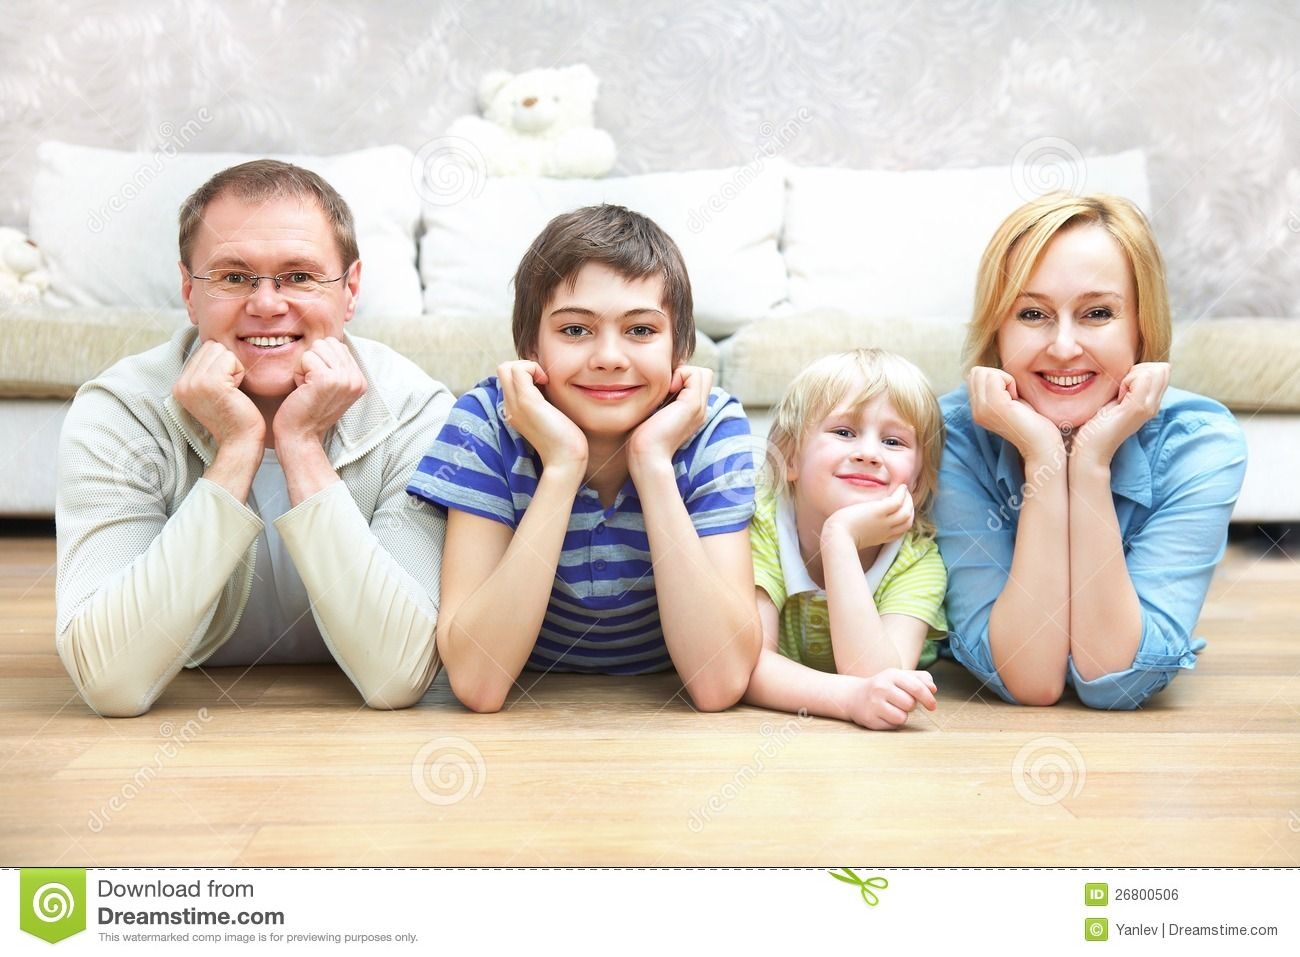 Family Having A Good Time Stock Photos - Image: 26800483